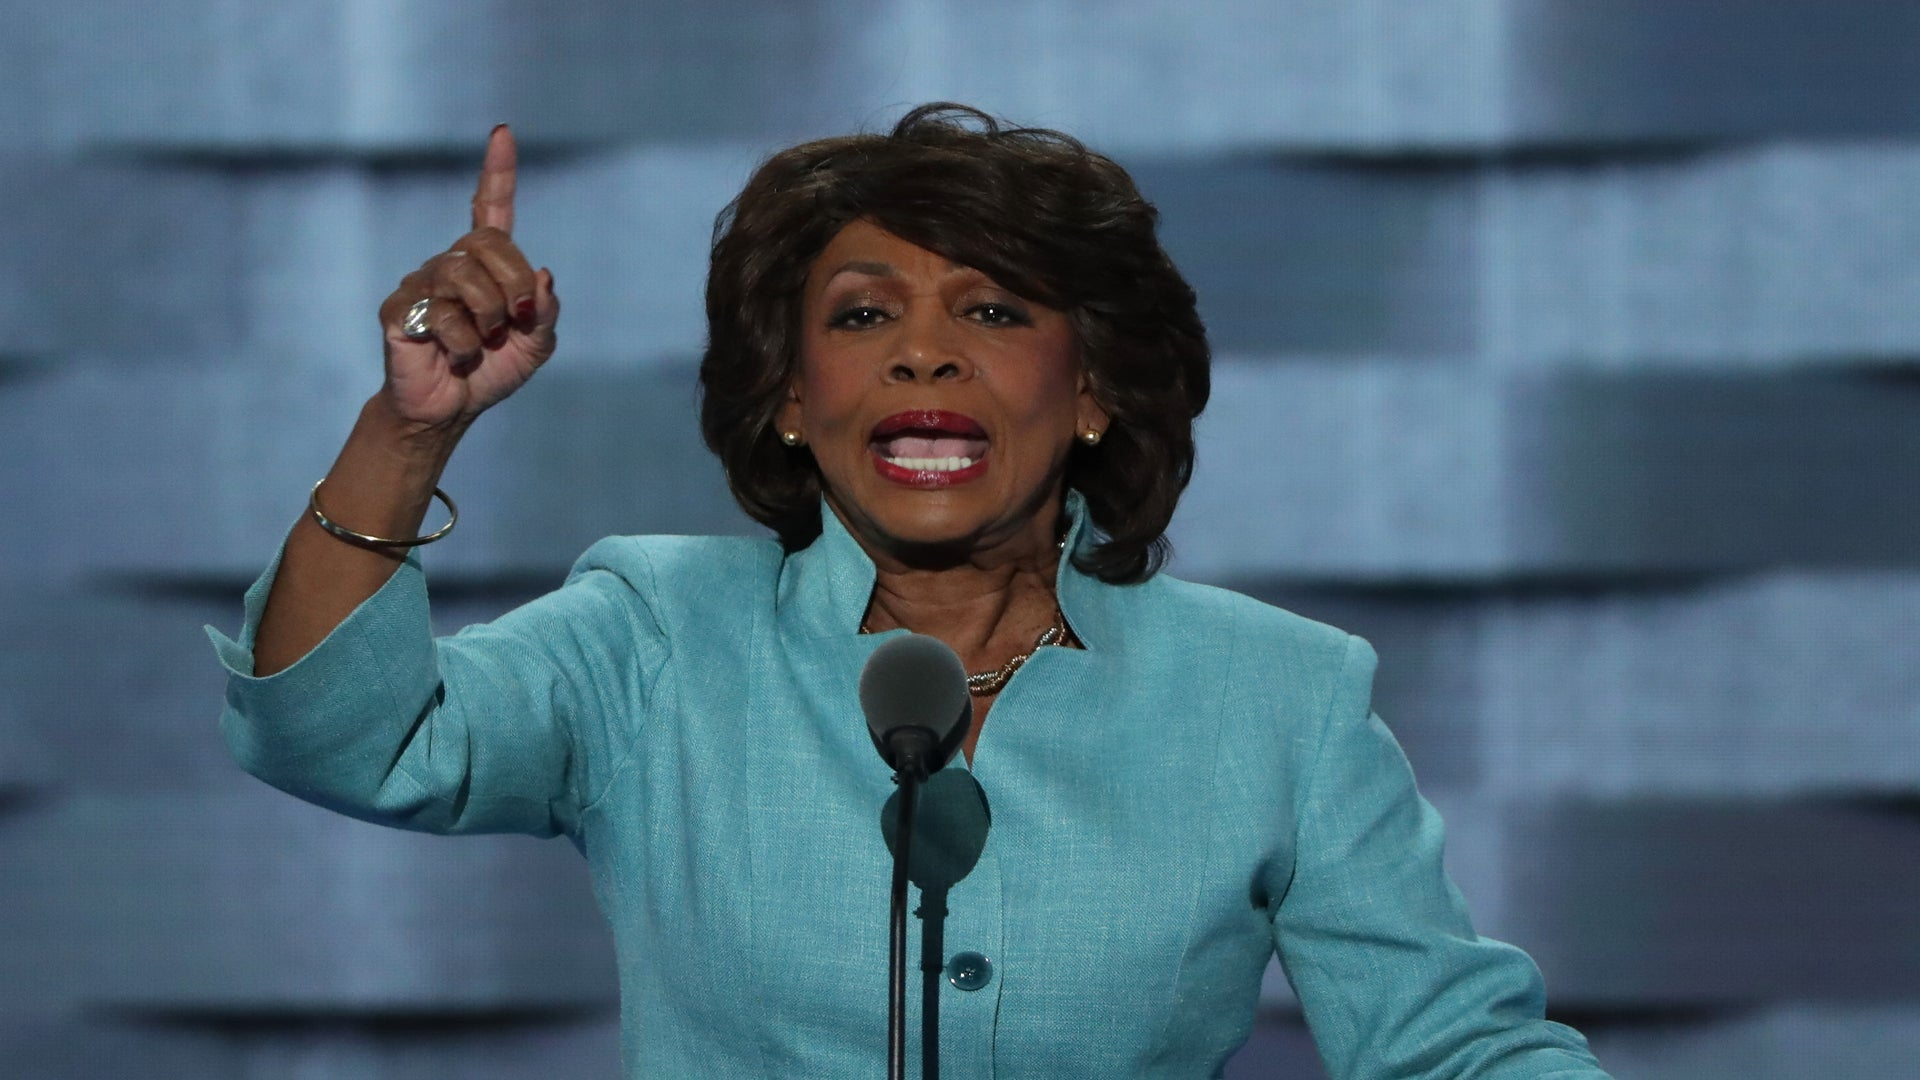 Congresswoman Maxine Waters Says She's Not Backing Down From Her Goal To Have Trump Impeached